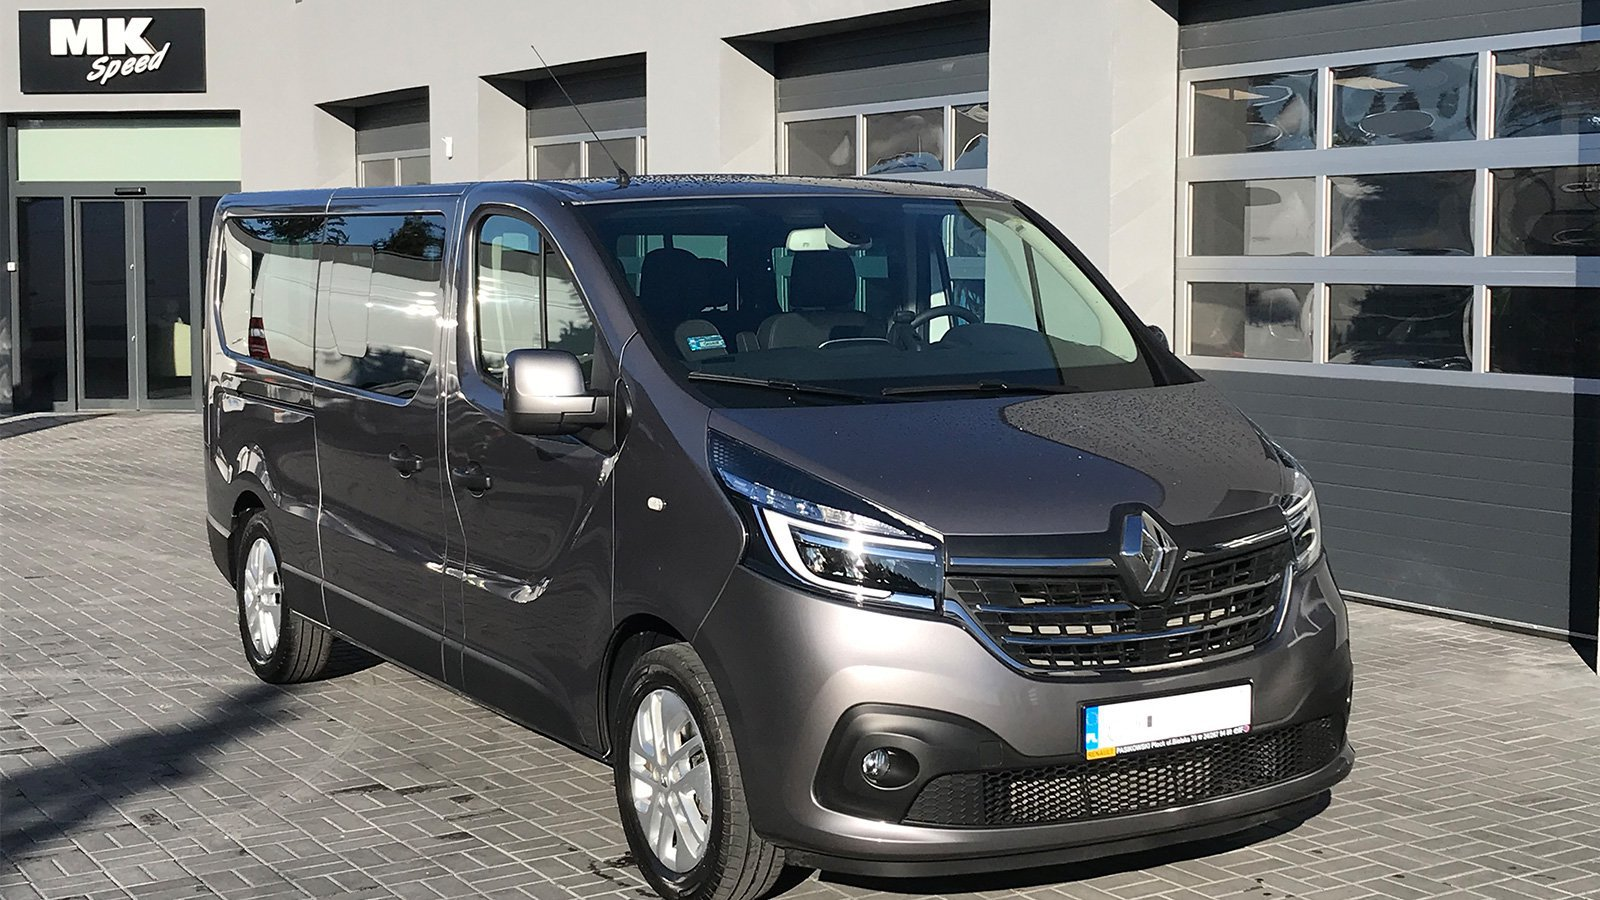 Renault Trafic - Mk Speed Rent a Car Inowrocław